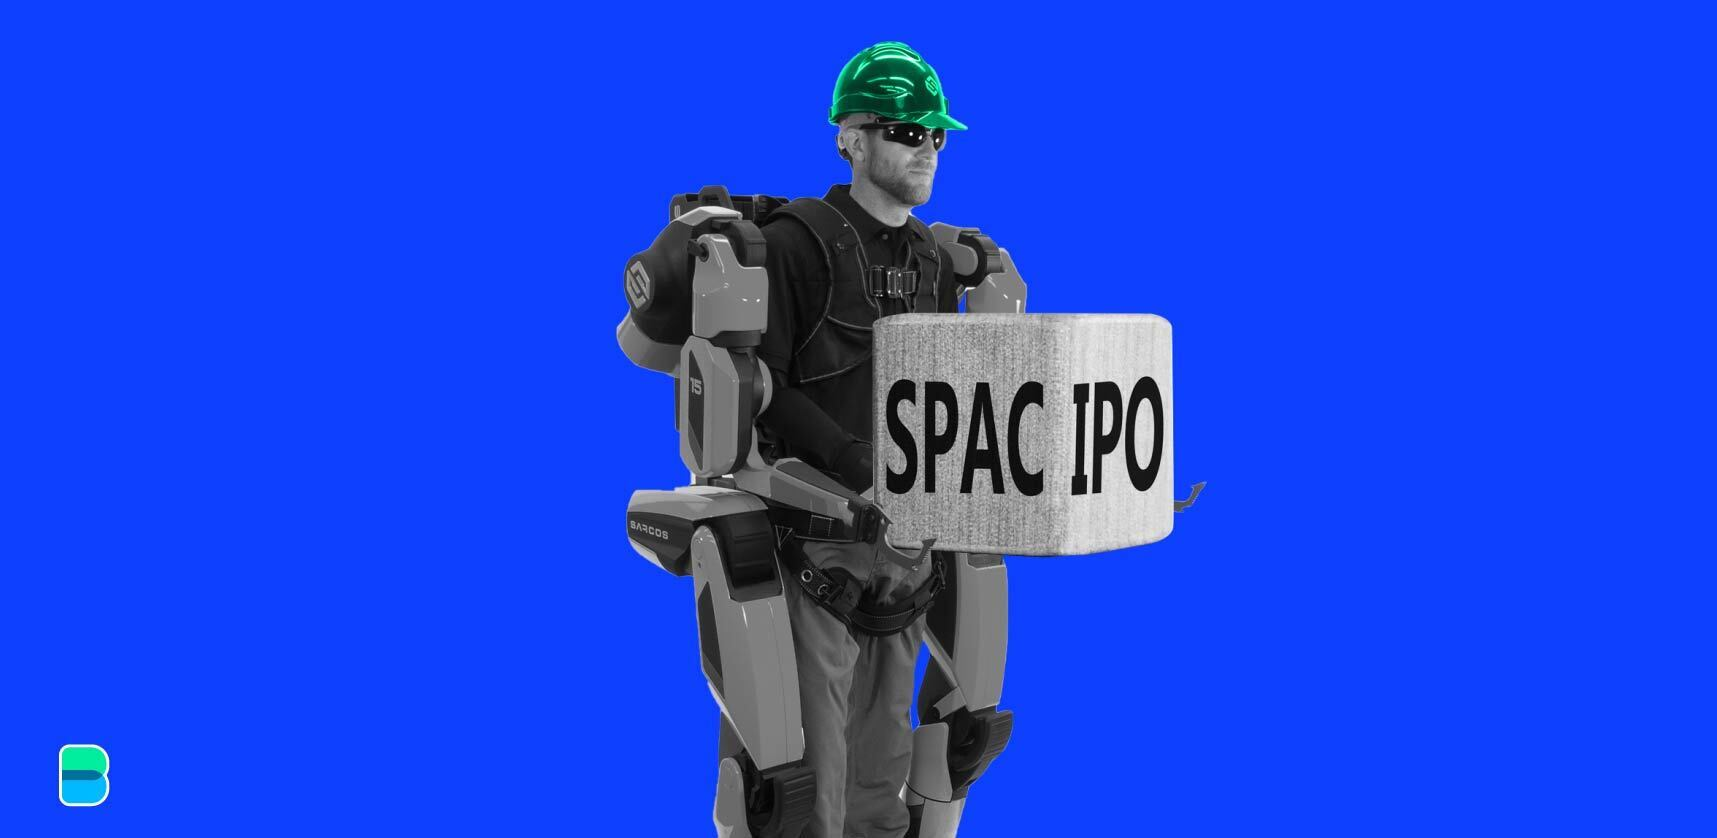 Robots that SPAC